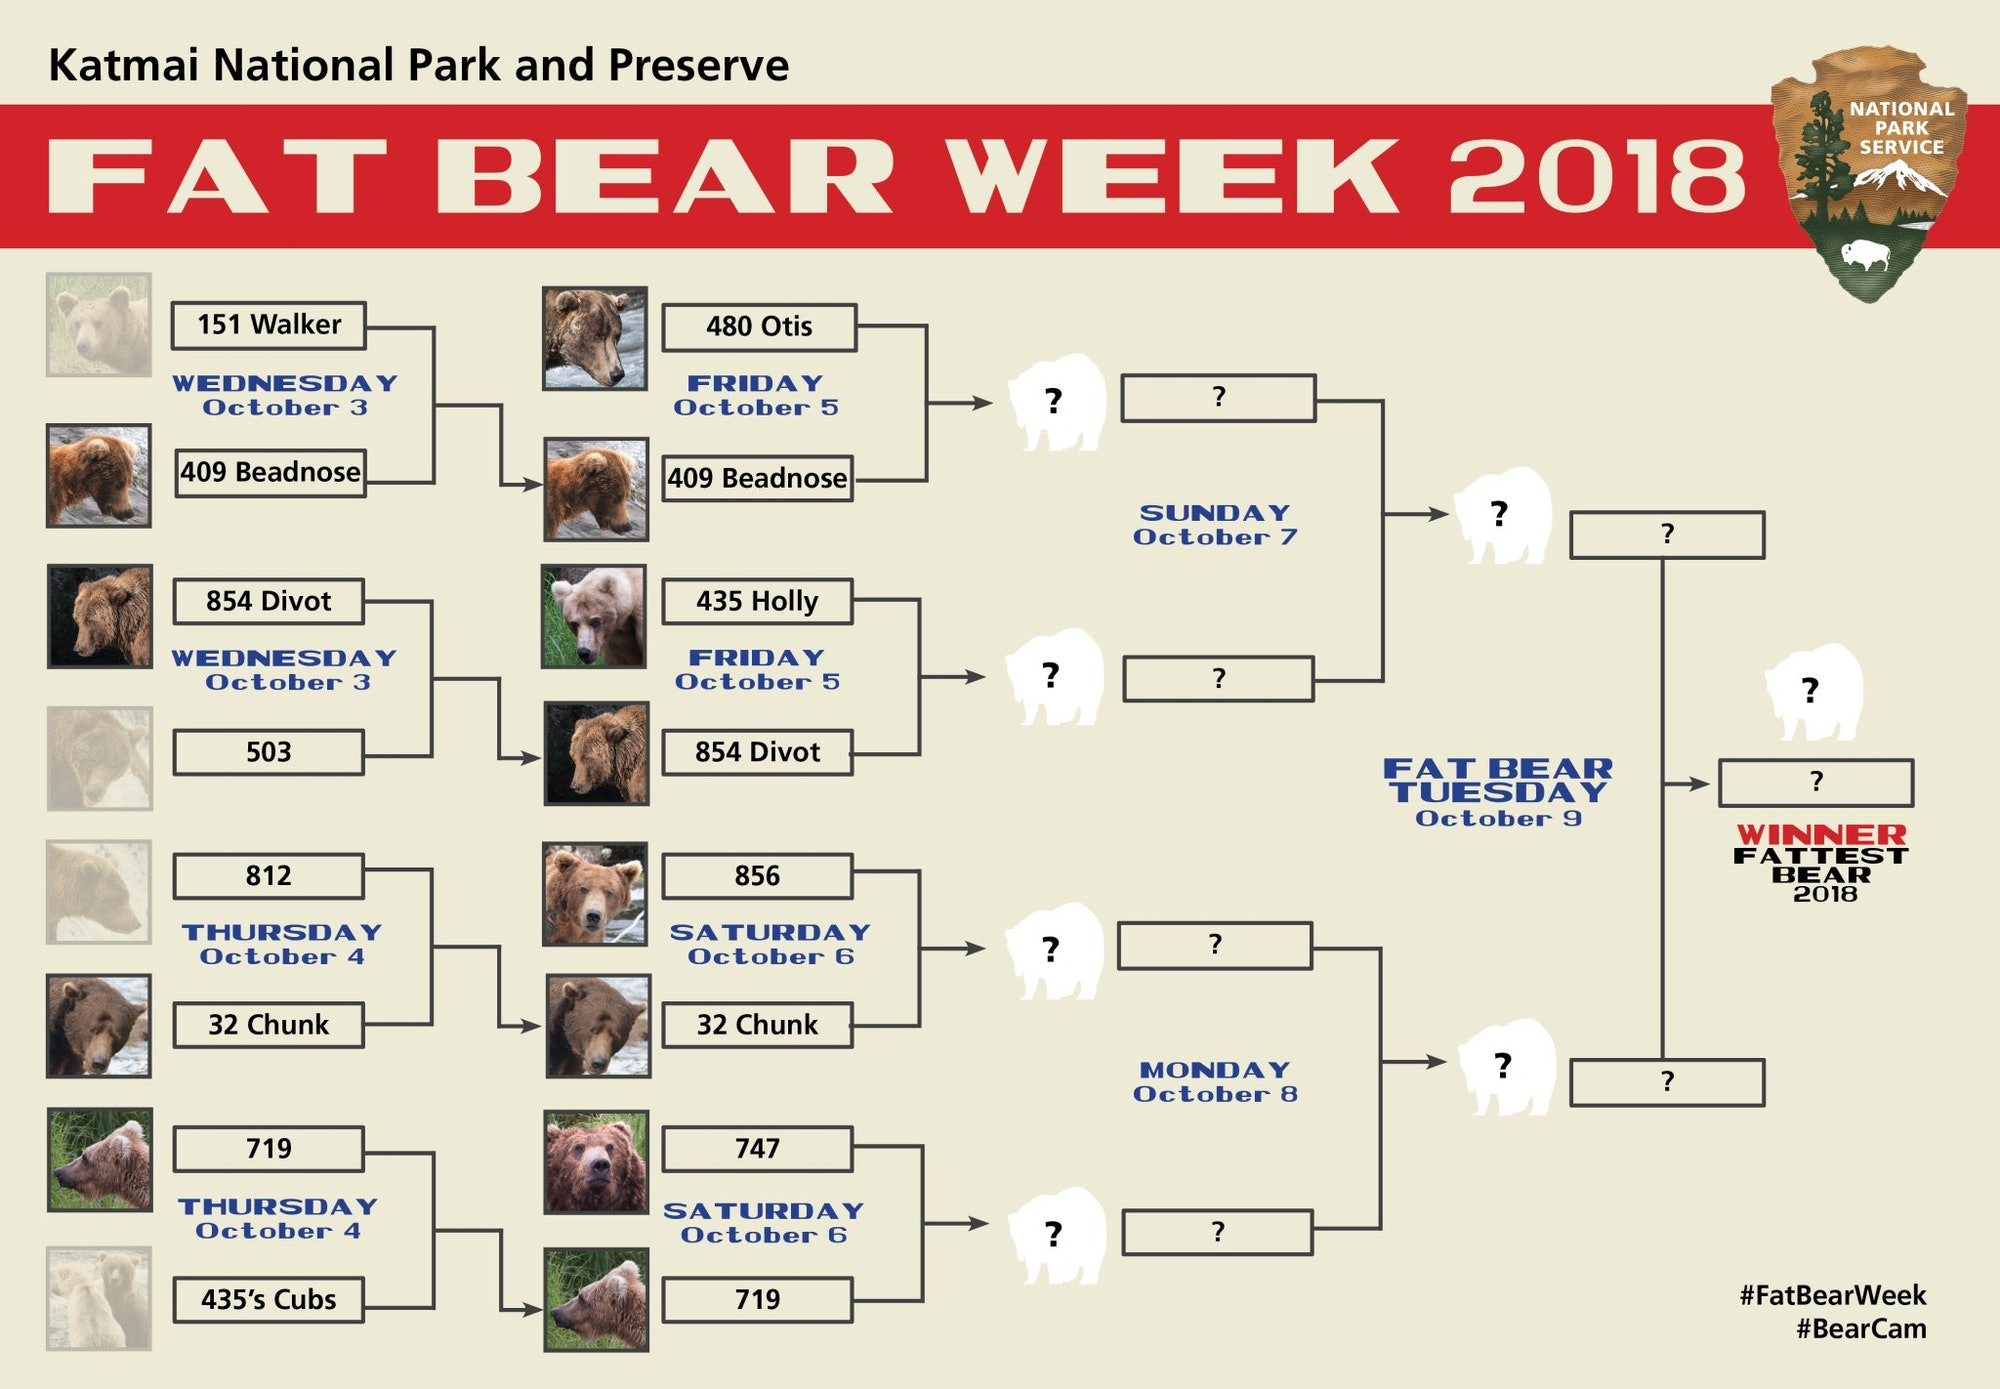 The 2018 Fat Bear Week Bracket. As you can see, bear 409, aka Beadnose, faced off against Otis on Friday, and as of 6:34 p.m., was in the lead on Facebook voting.